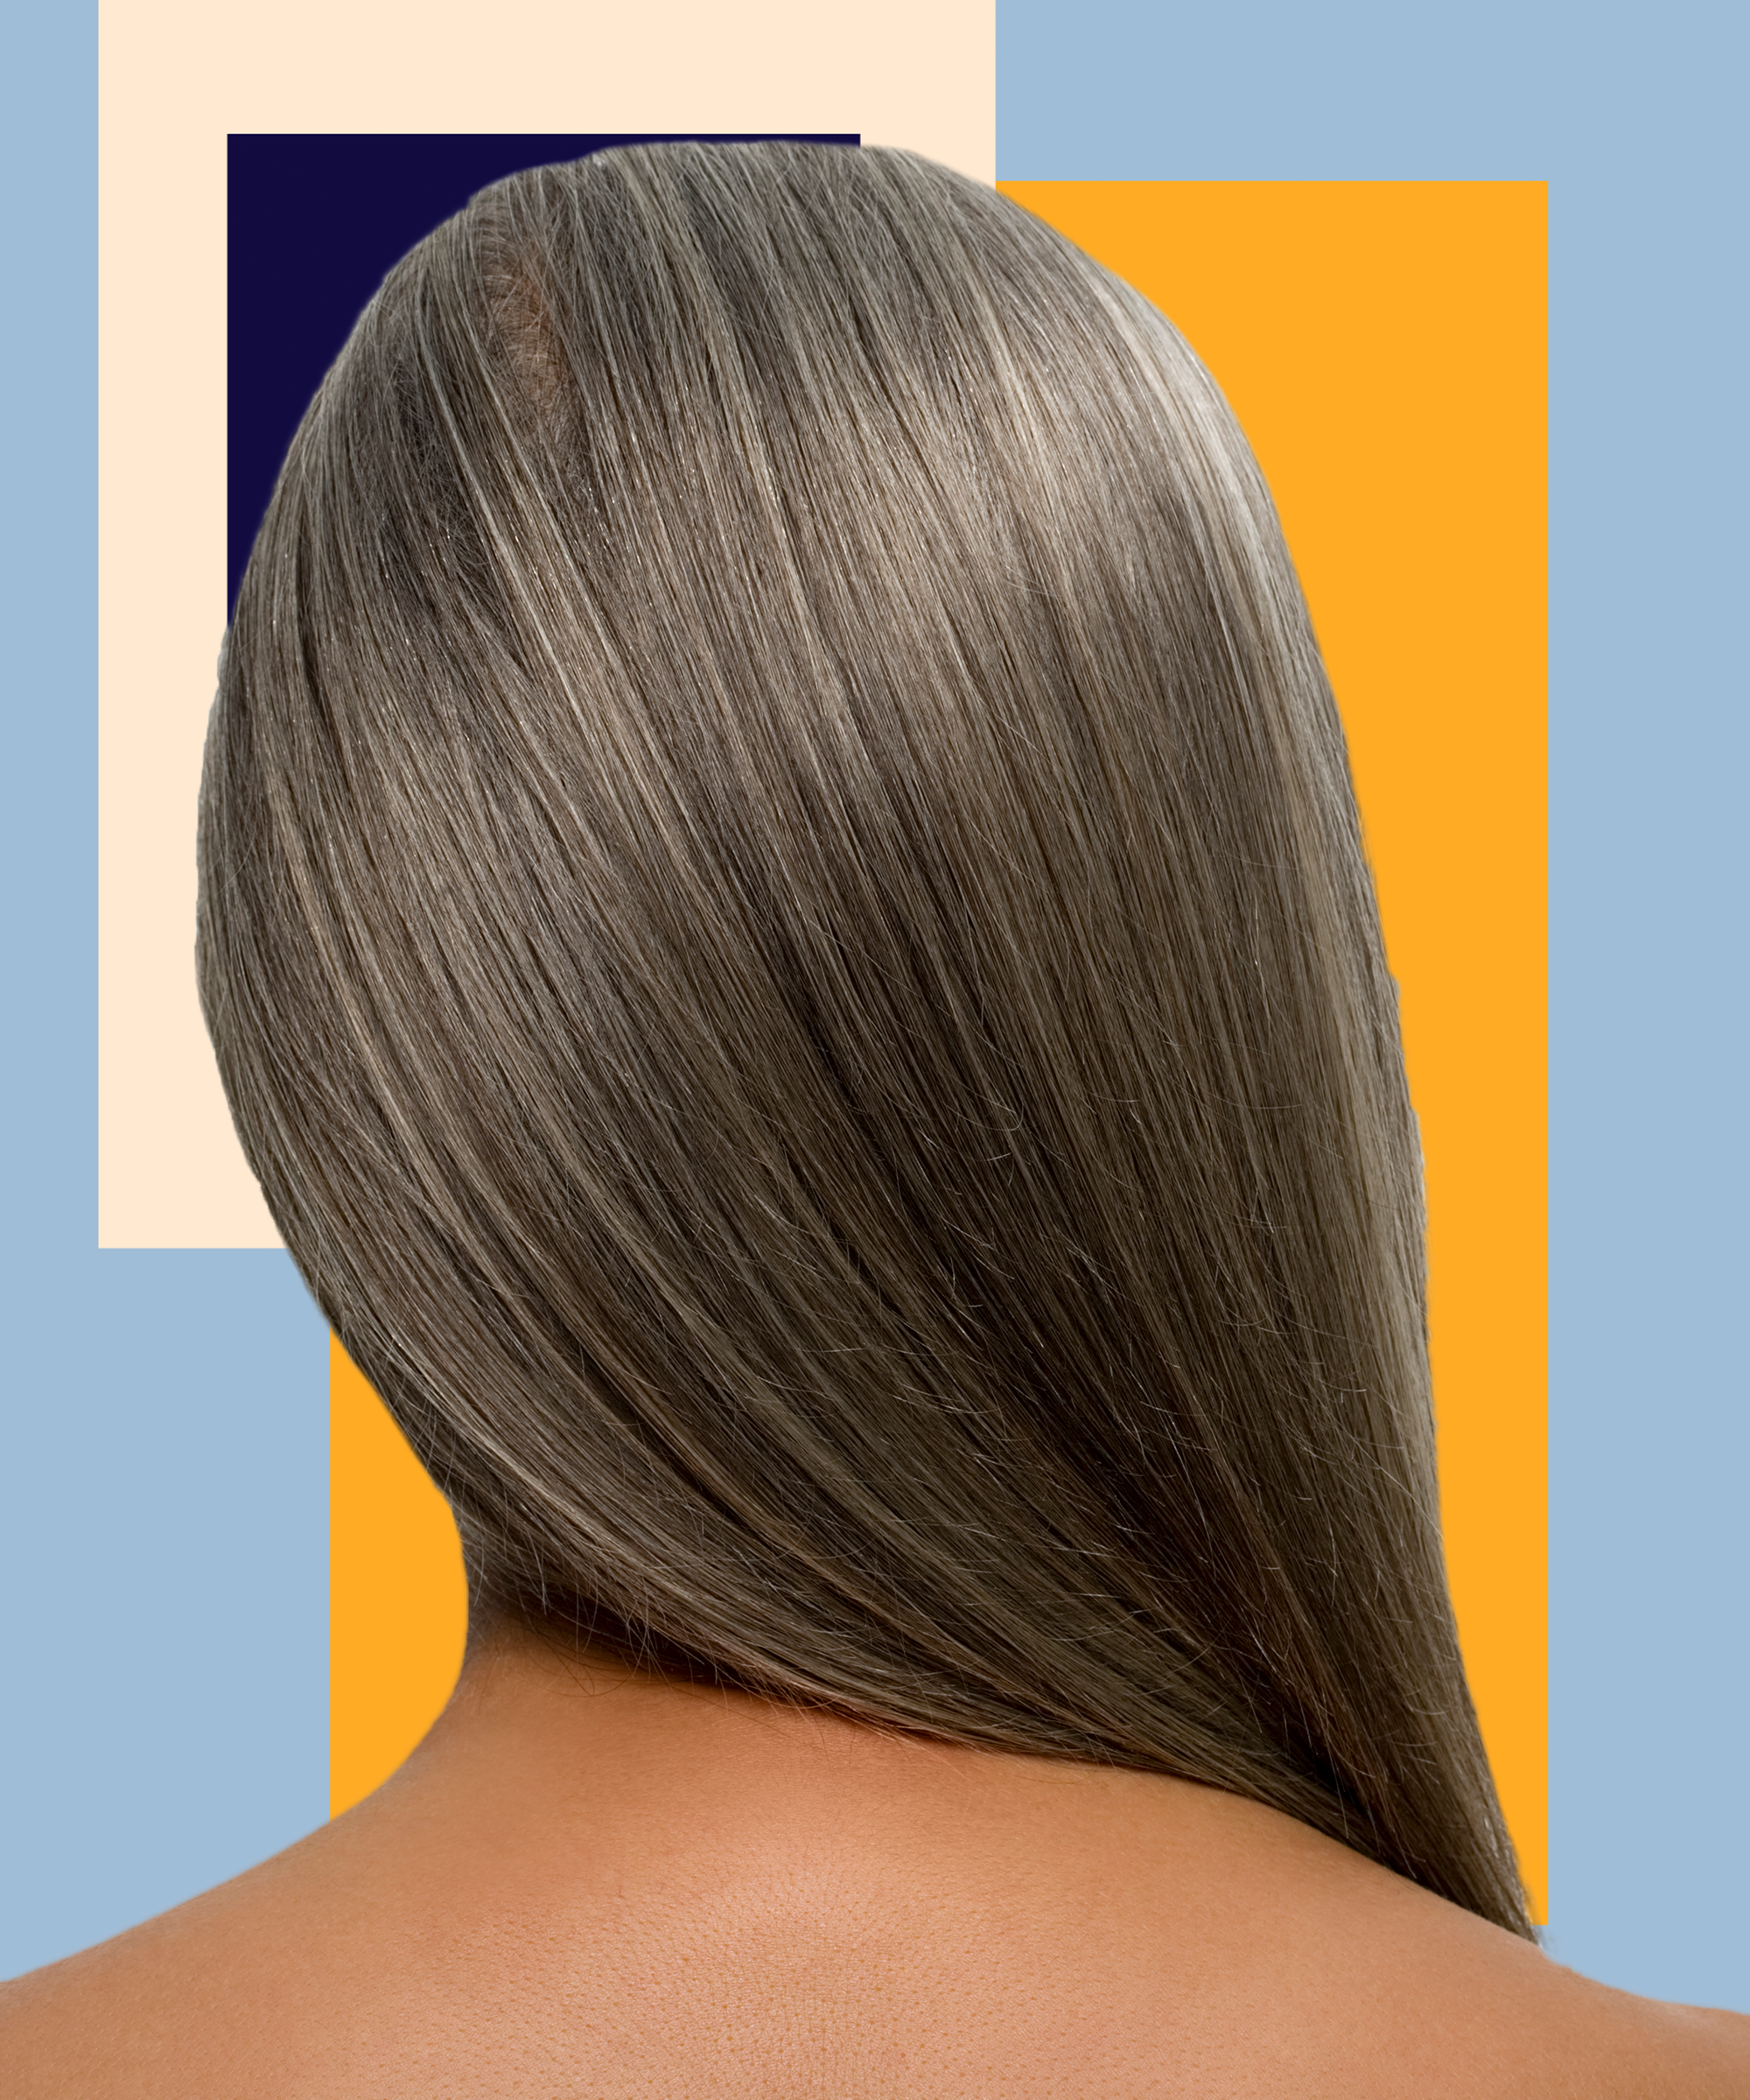 Charcoal Gray Hair Instagram Trend